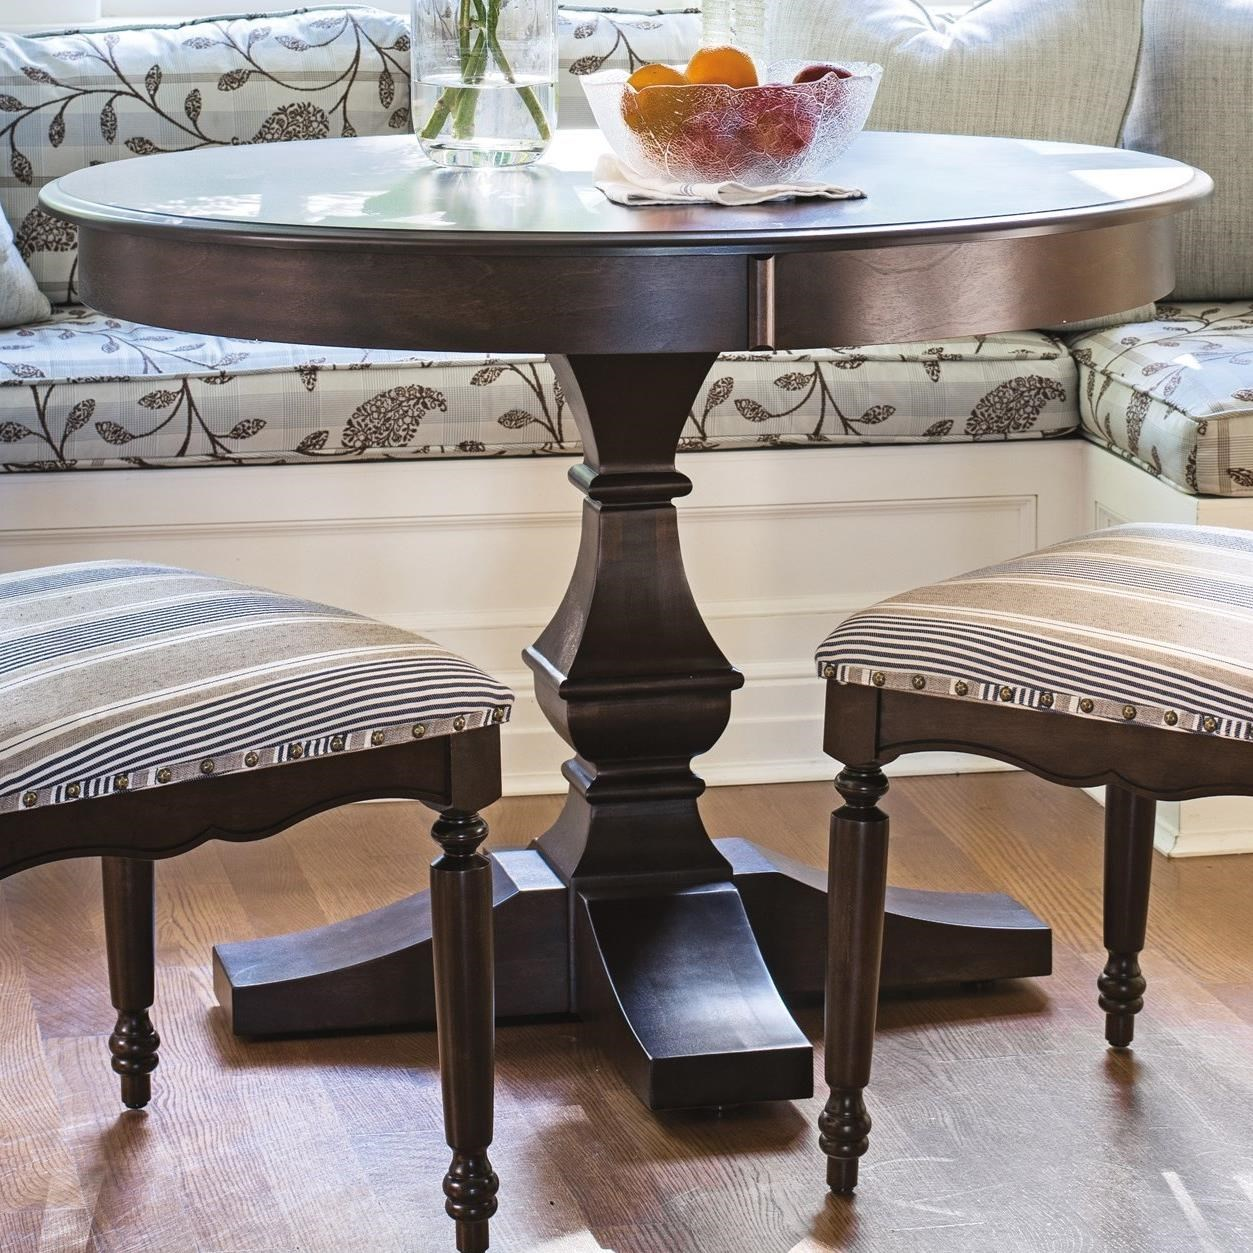 Custom Dining Customizable Round Dining Table by Canadel at Dinette Depot